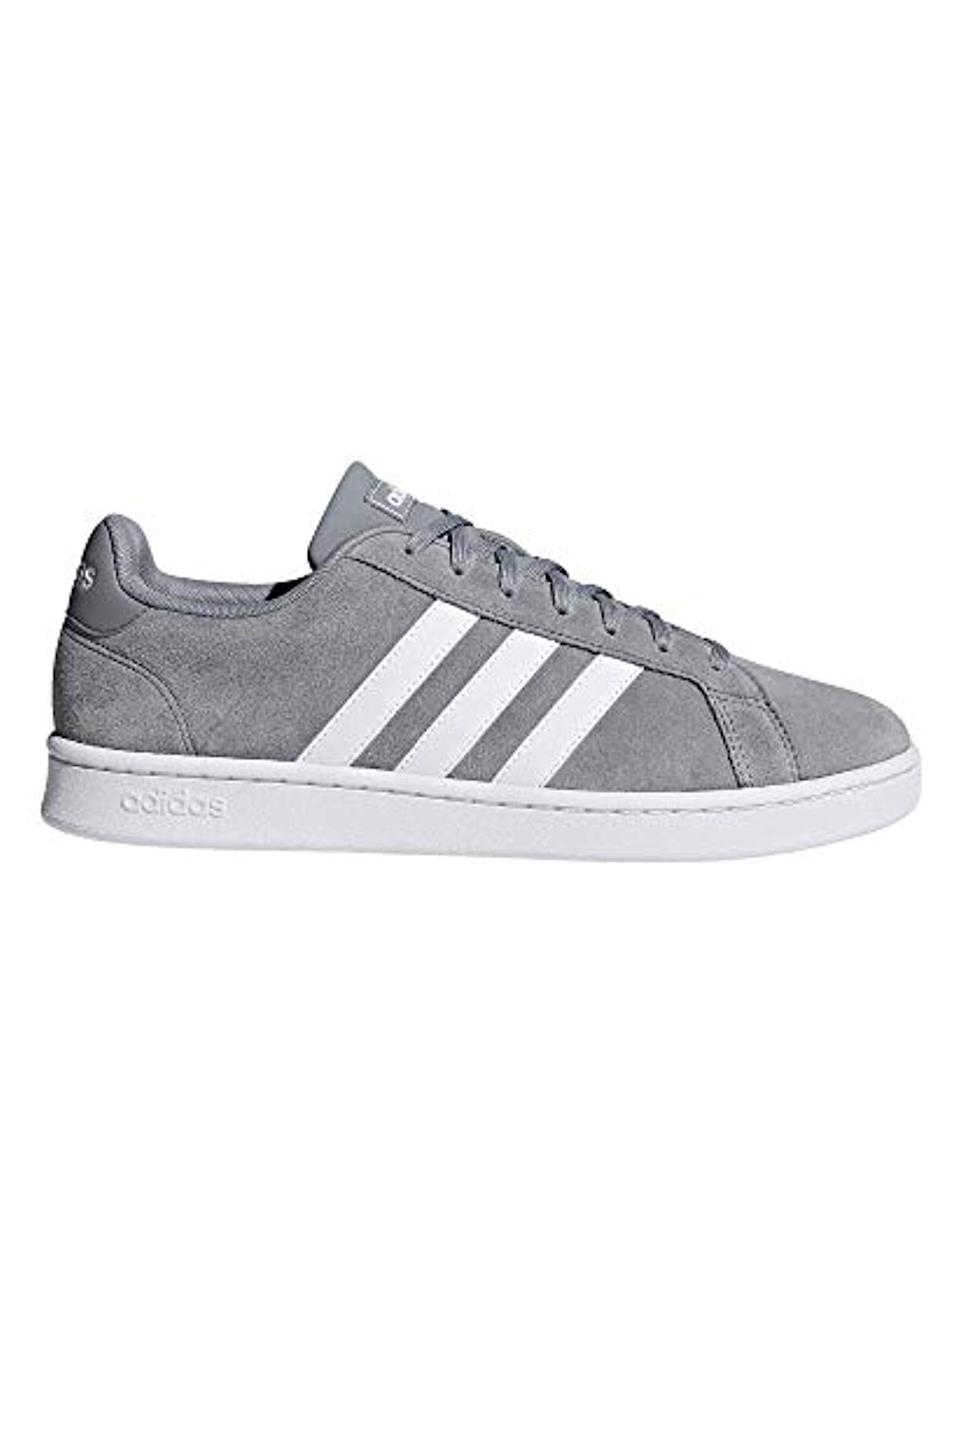 """<p><strong>Adidas</strong></p><p>amazon.com</p><p><strong>$72.38</strong></p><p><a href=""""https://www.amazon.com/dp/B07D9HWVVY?tag=syn-yahoo-20&ascsubtag=%5Bartid%7C10051.g.13053688%5Bsrc%7Cyahoo-us"""" rel=""""nofollow noopener"""" target=""""_blank"""" data-ylk=""""slk:Shop Now"""" class=""""link rapid-noclick-resp"""">Shop Now</a></p><p>If you're shopping for a boyfriend who's an amazing person but just not the best dresser, start with his shoes. Prince Harry has been photographed in a similar pair (Sdidas's Gazelle trainer) in a similar grey, suede color on countless occasions. This color looks sharp with everything.</p>"""